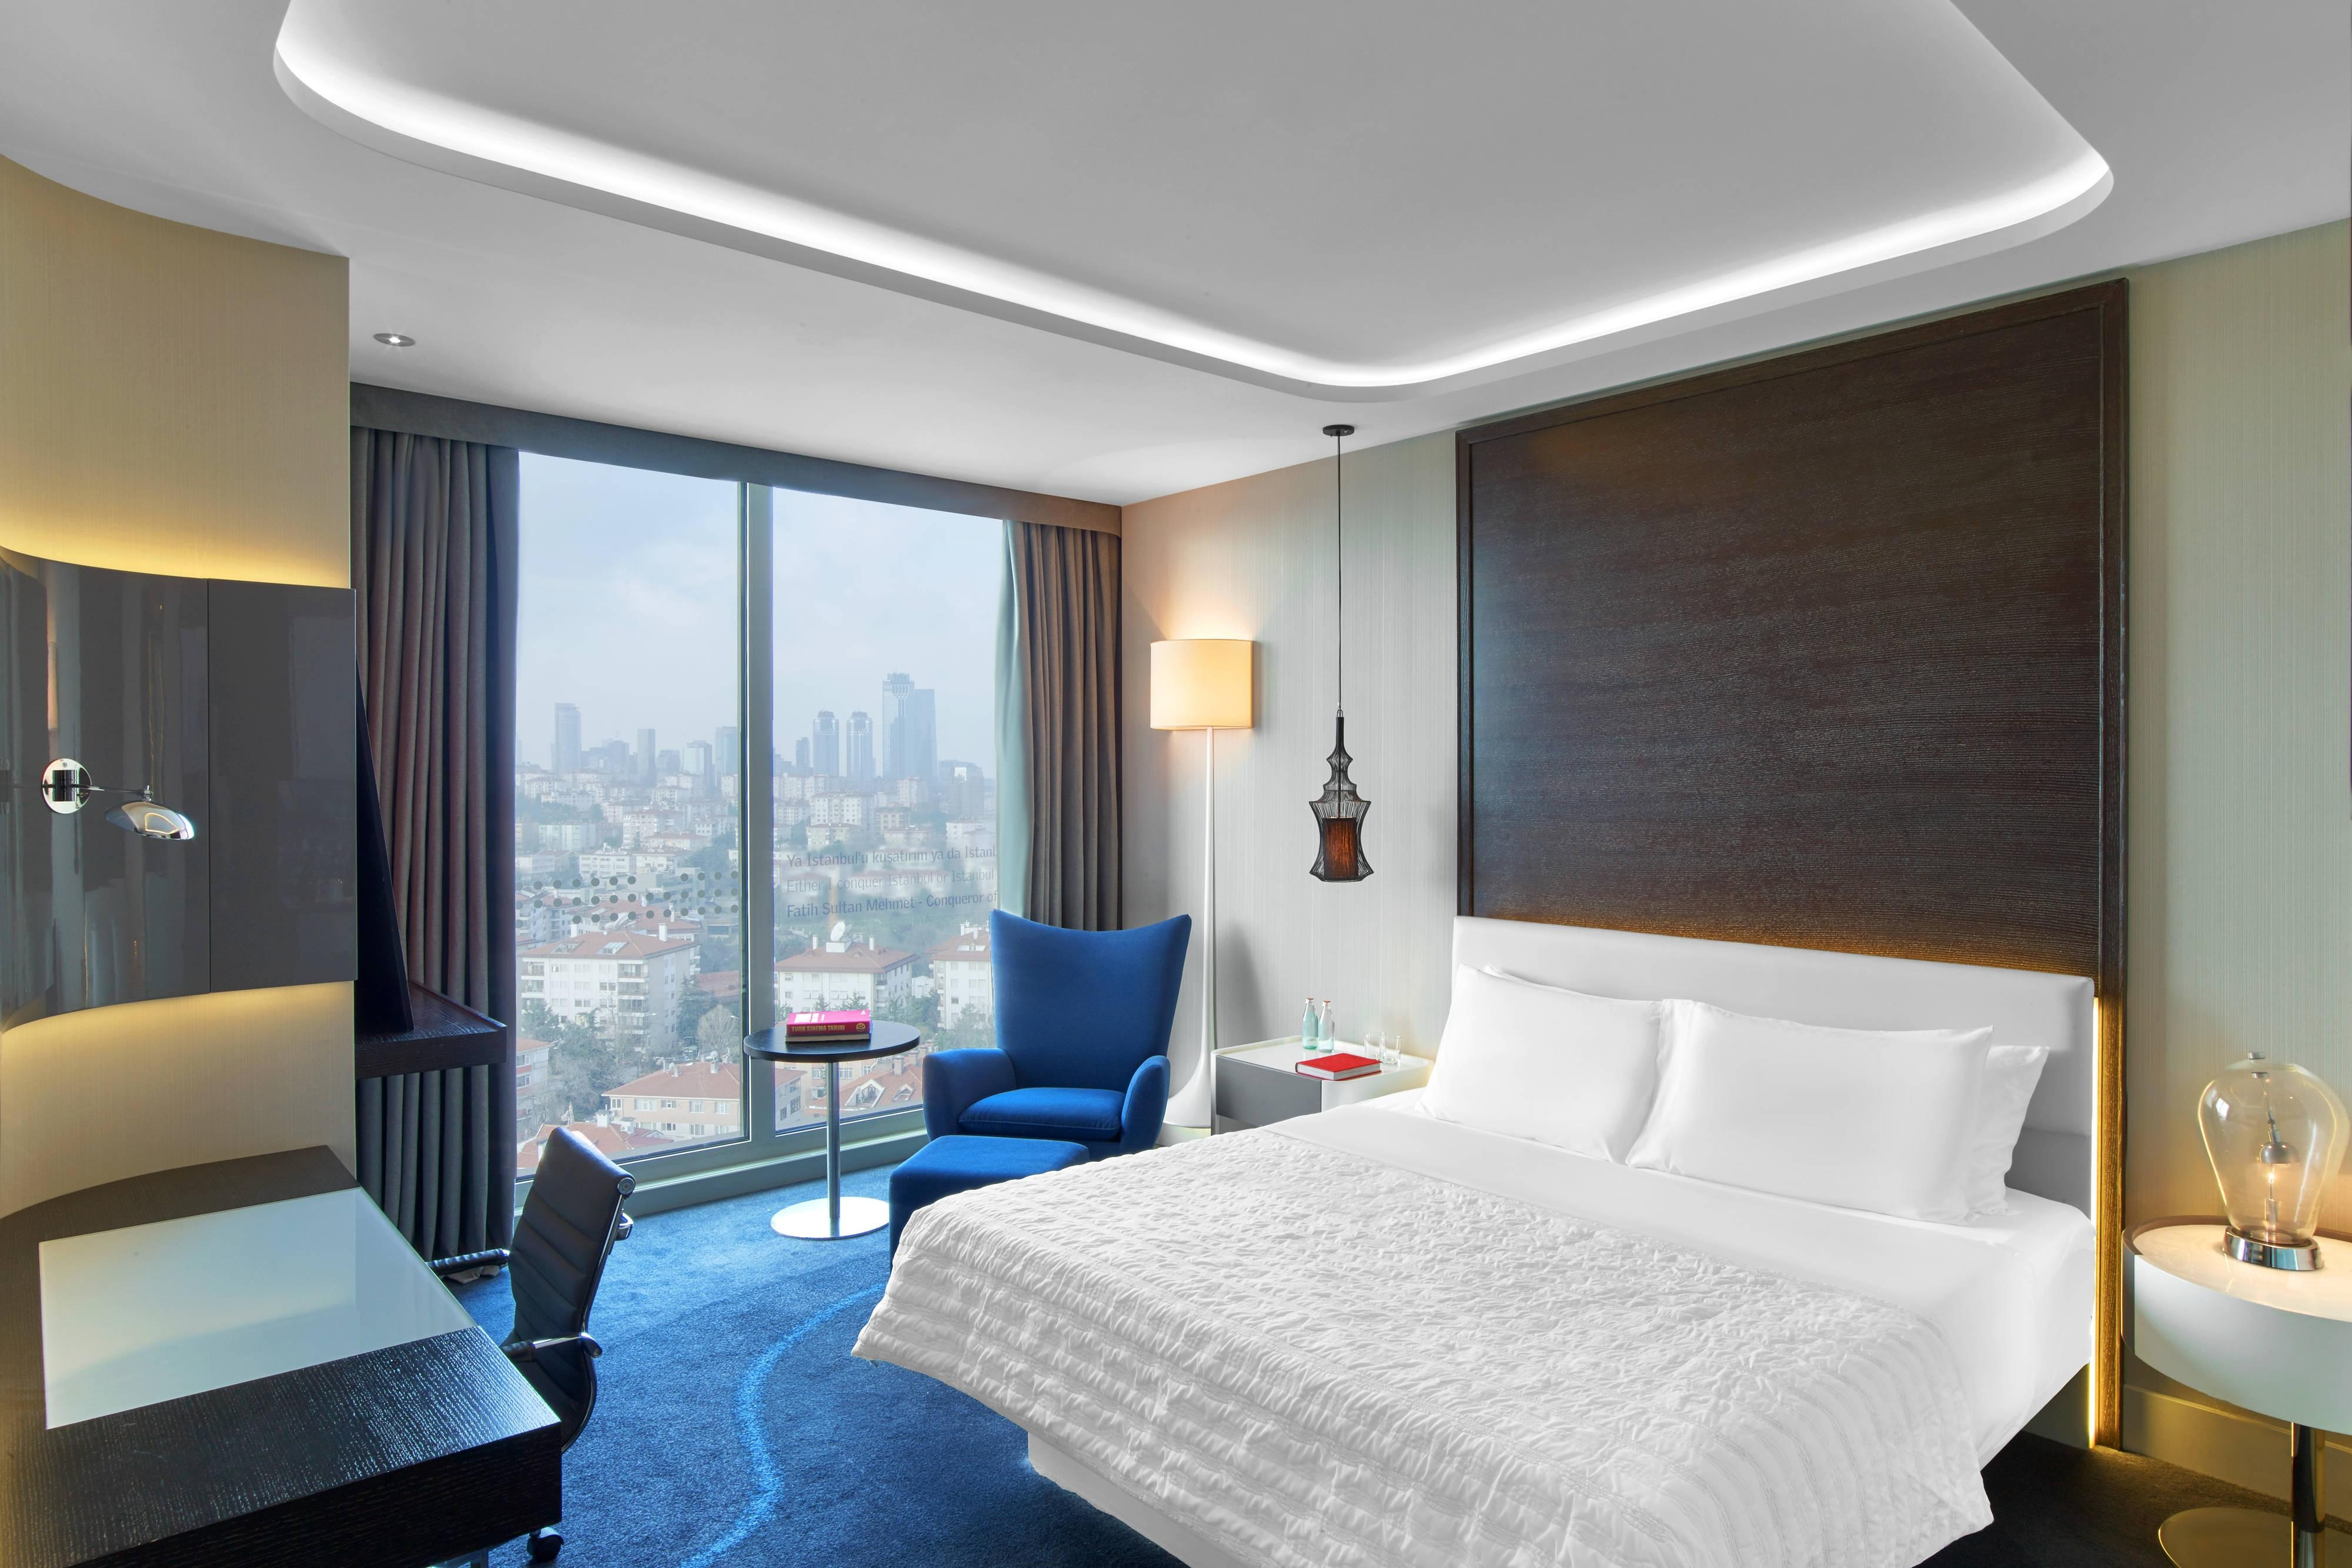 Deluxe room with city view and king size bed